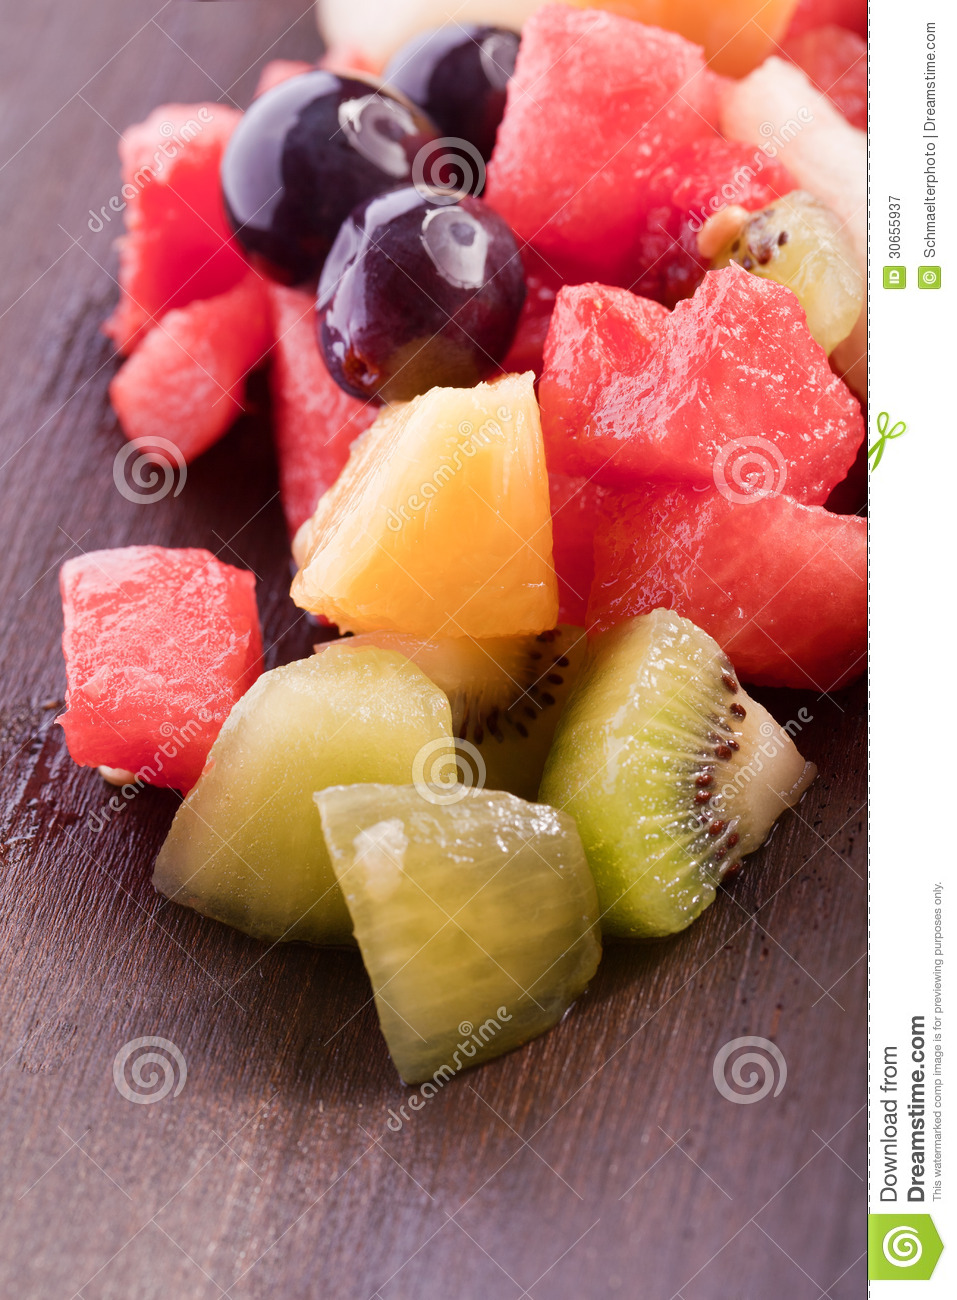 Tropical Fruit Salad Royalty Free Stock Photography - Image: 30655937